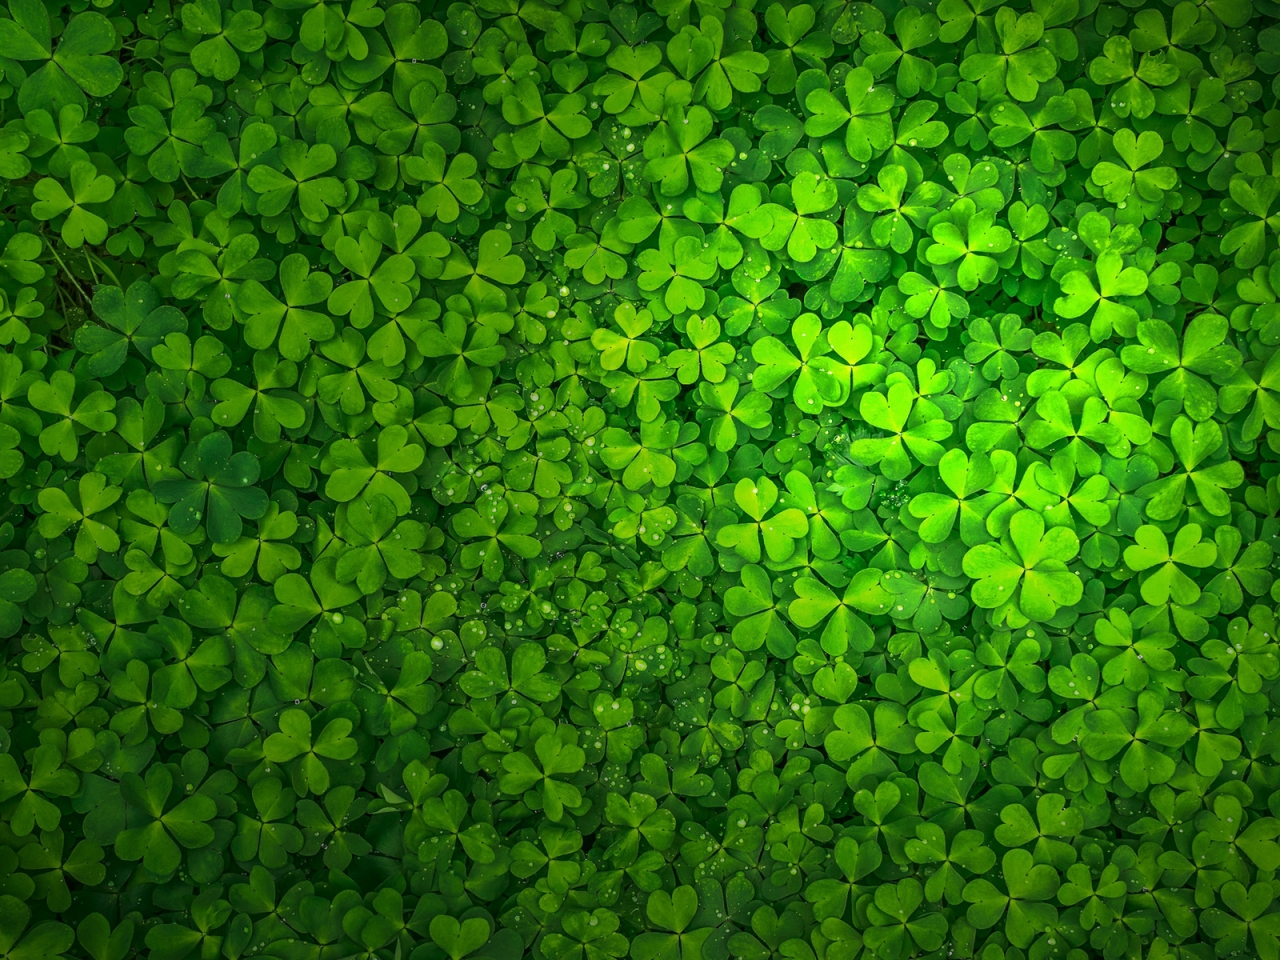 St Patrick's Day for 1280 x 960 resolution